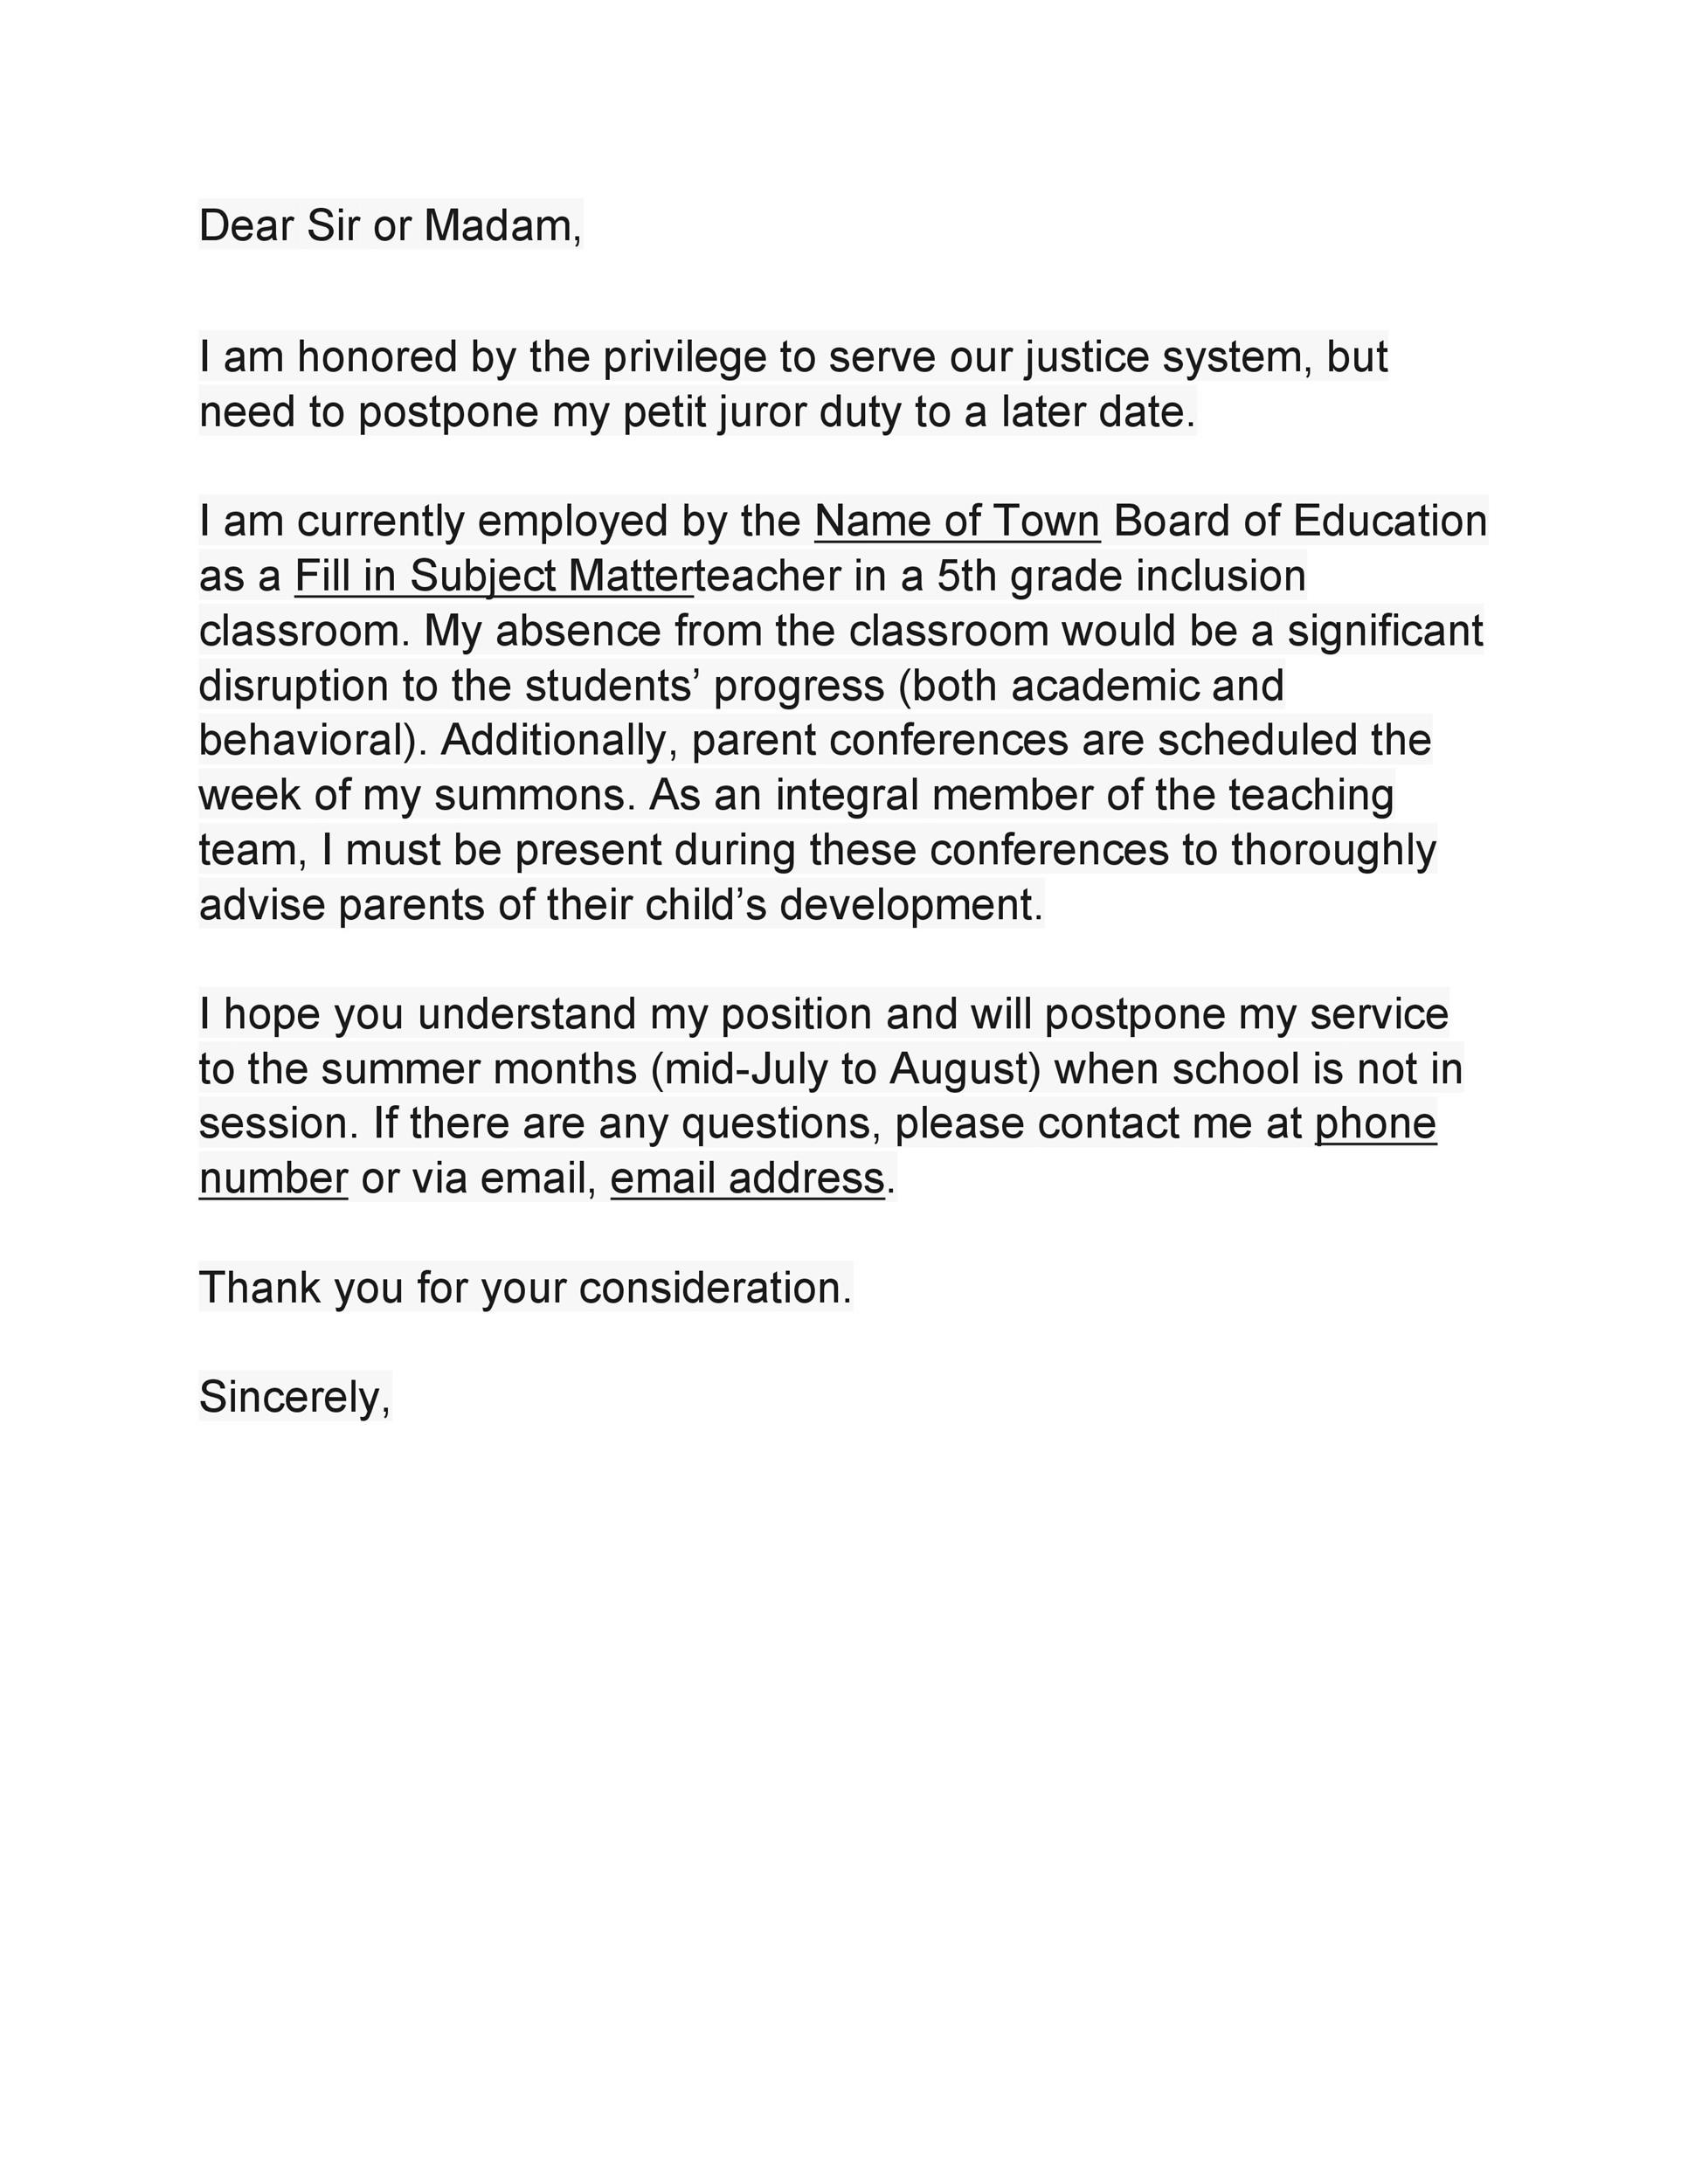 Jury Duty Excuse Letter Non-English Speaker from templatelab.com